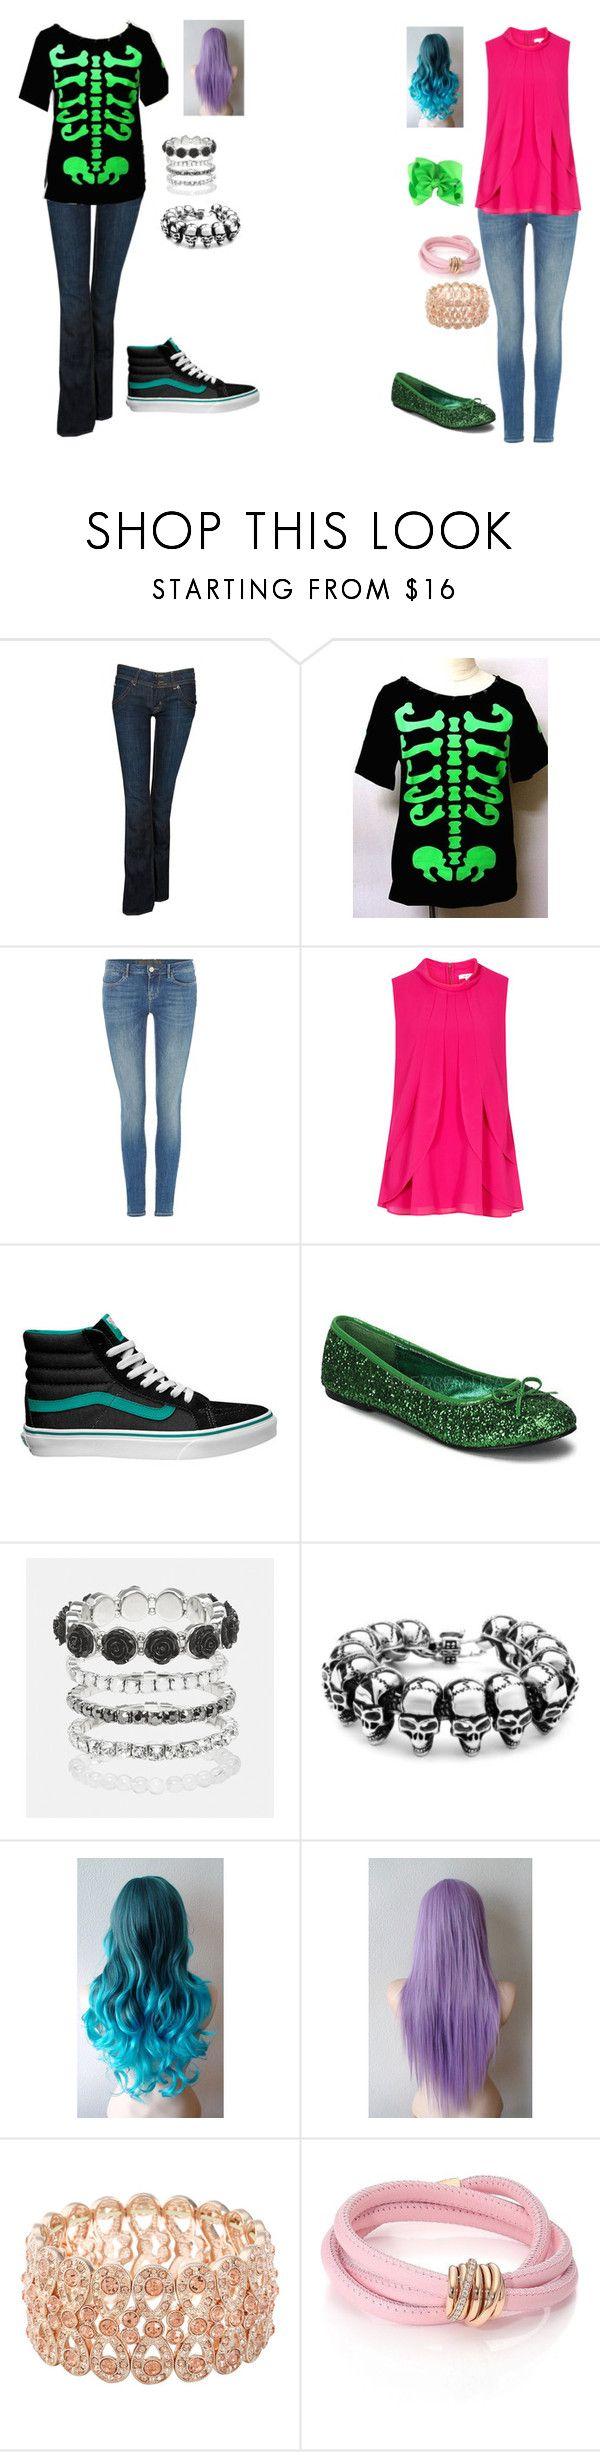 """Emo vs Girly Girl"" by sierra-ivy on Polyvore featuring Hudson Jeans, GUESS, Vans, Funtasma, Avenue, Monet and de Grisogono"